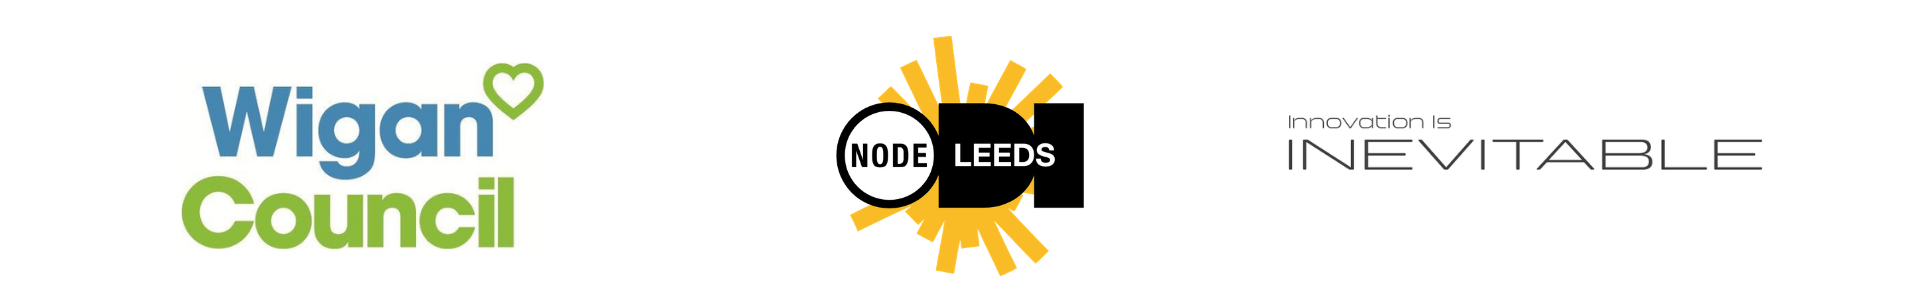 Wigan Council, ODIL Leeds and Inevitable logos